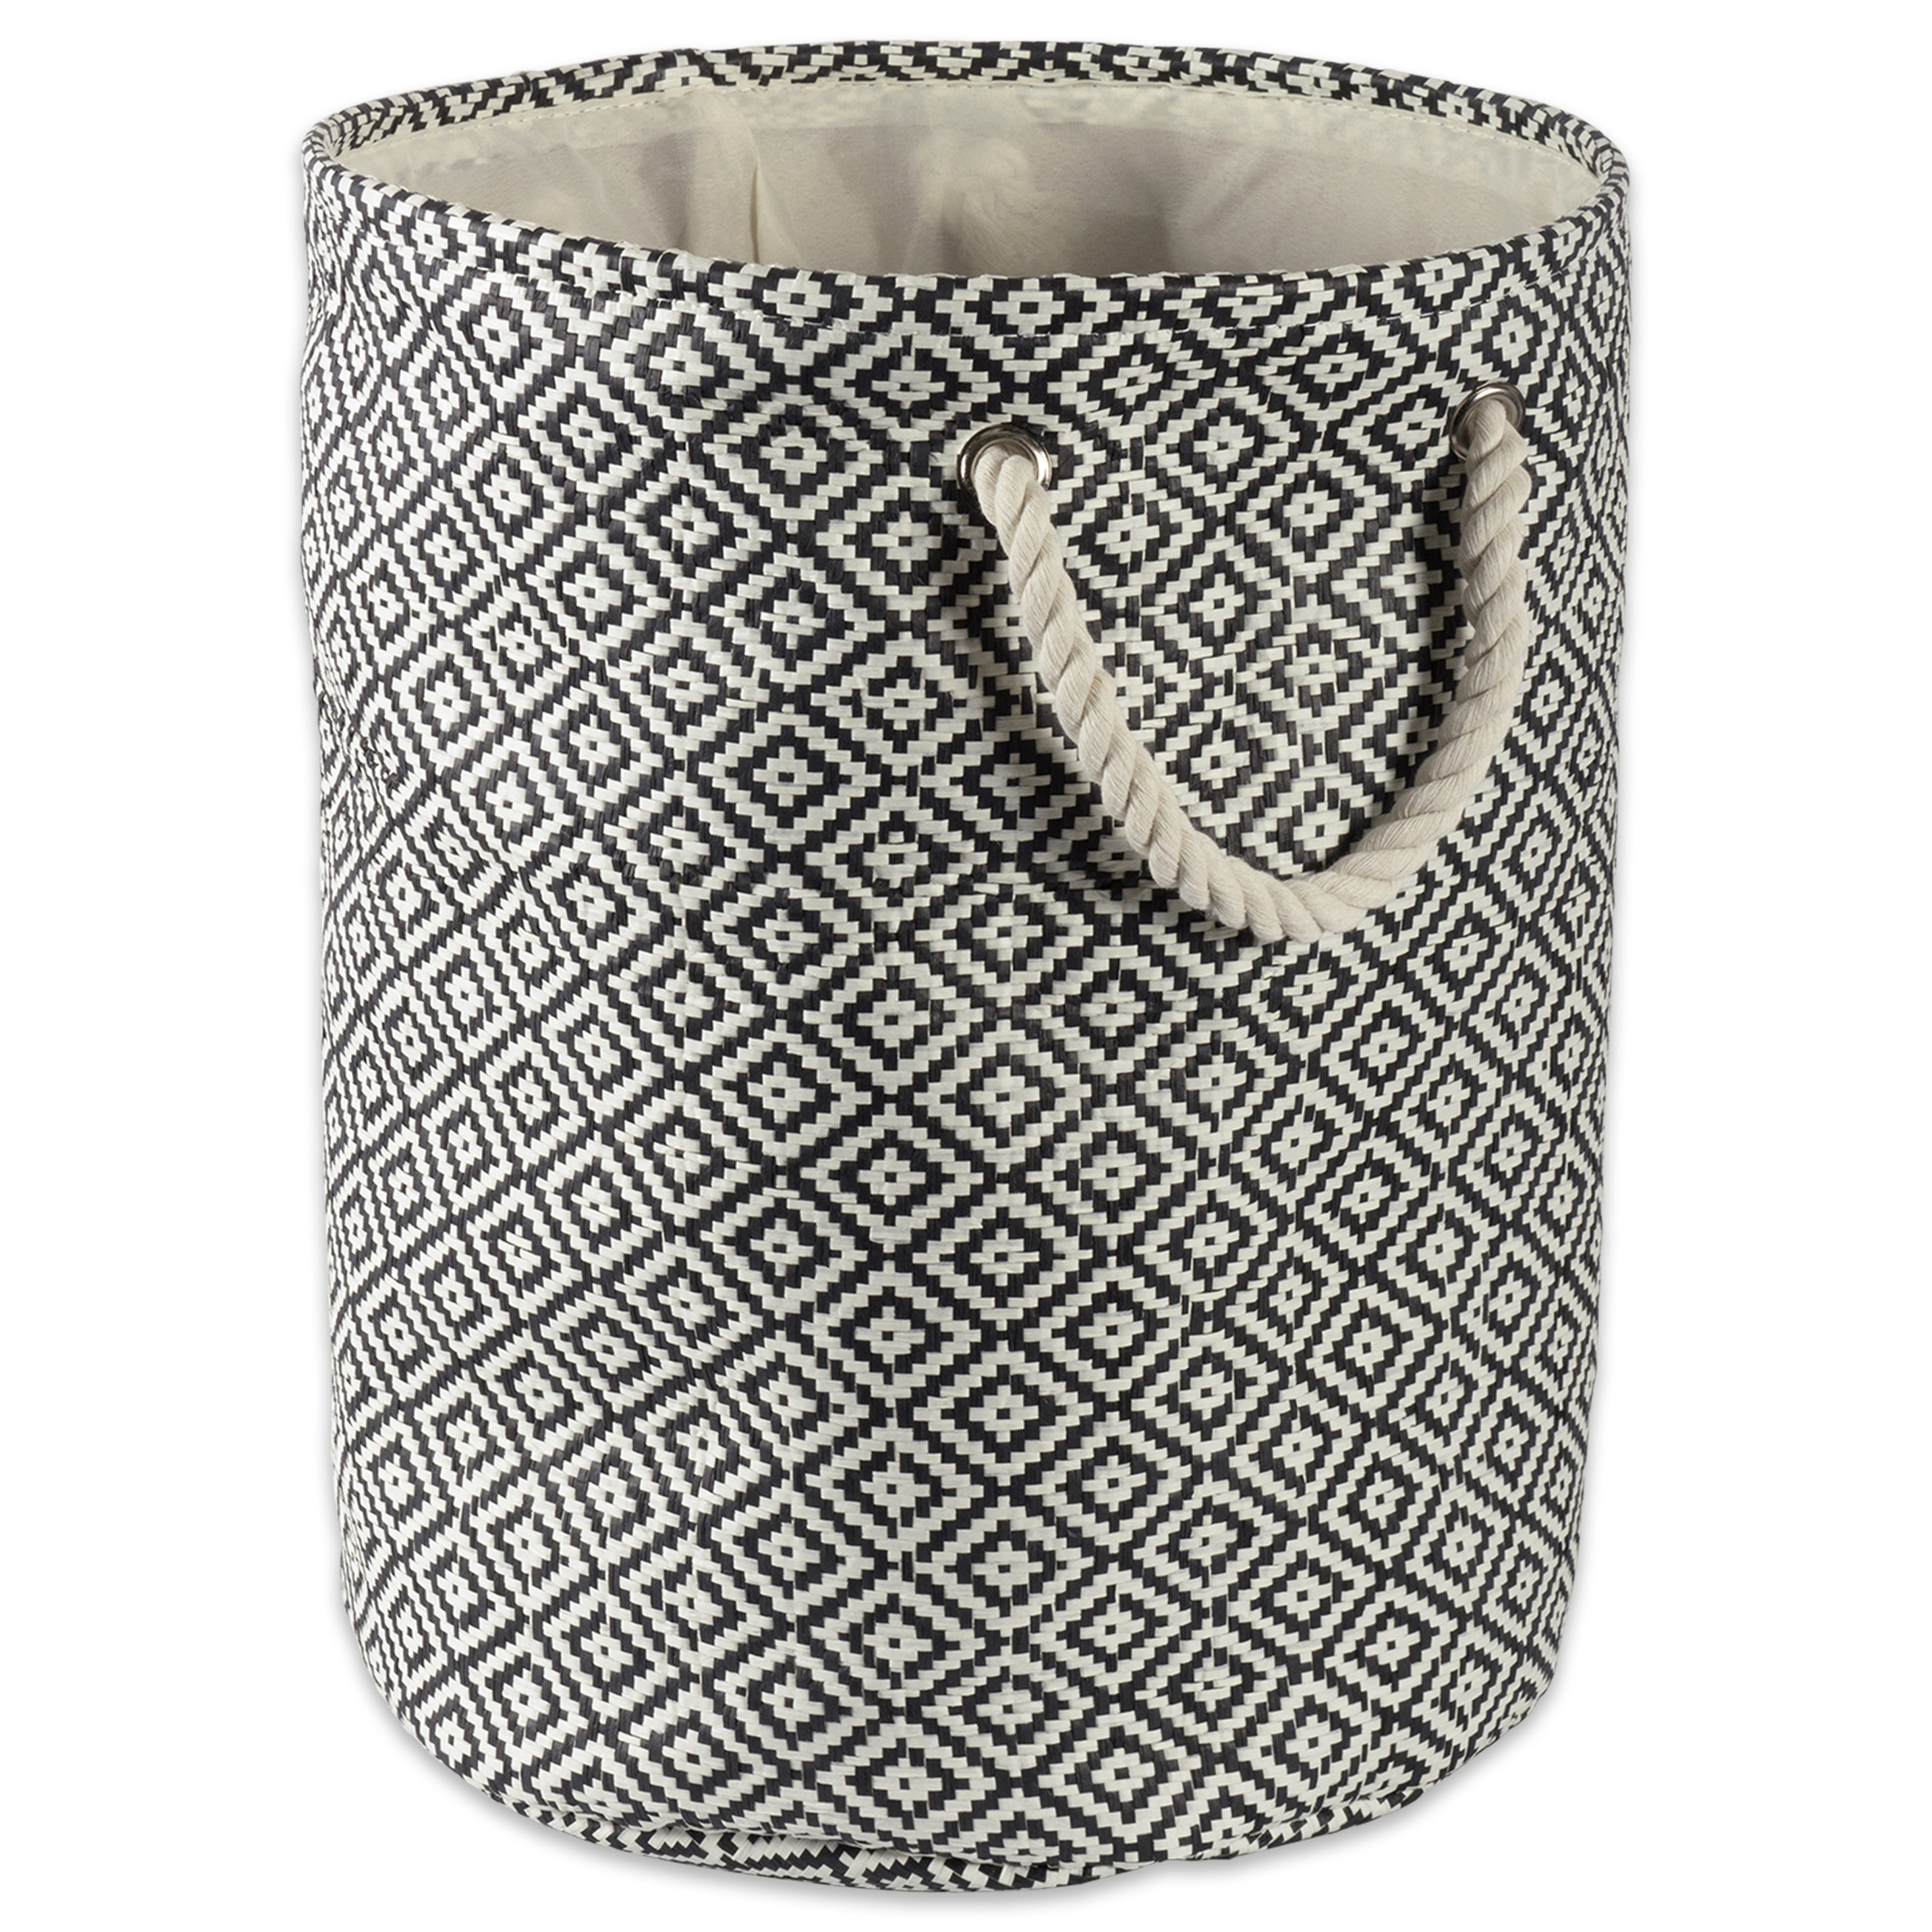 "Design Imports Paper Bin Geo Diamond Black Round Small, 14""x14""x12"", 100% Natural Woven Paper, Black"